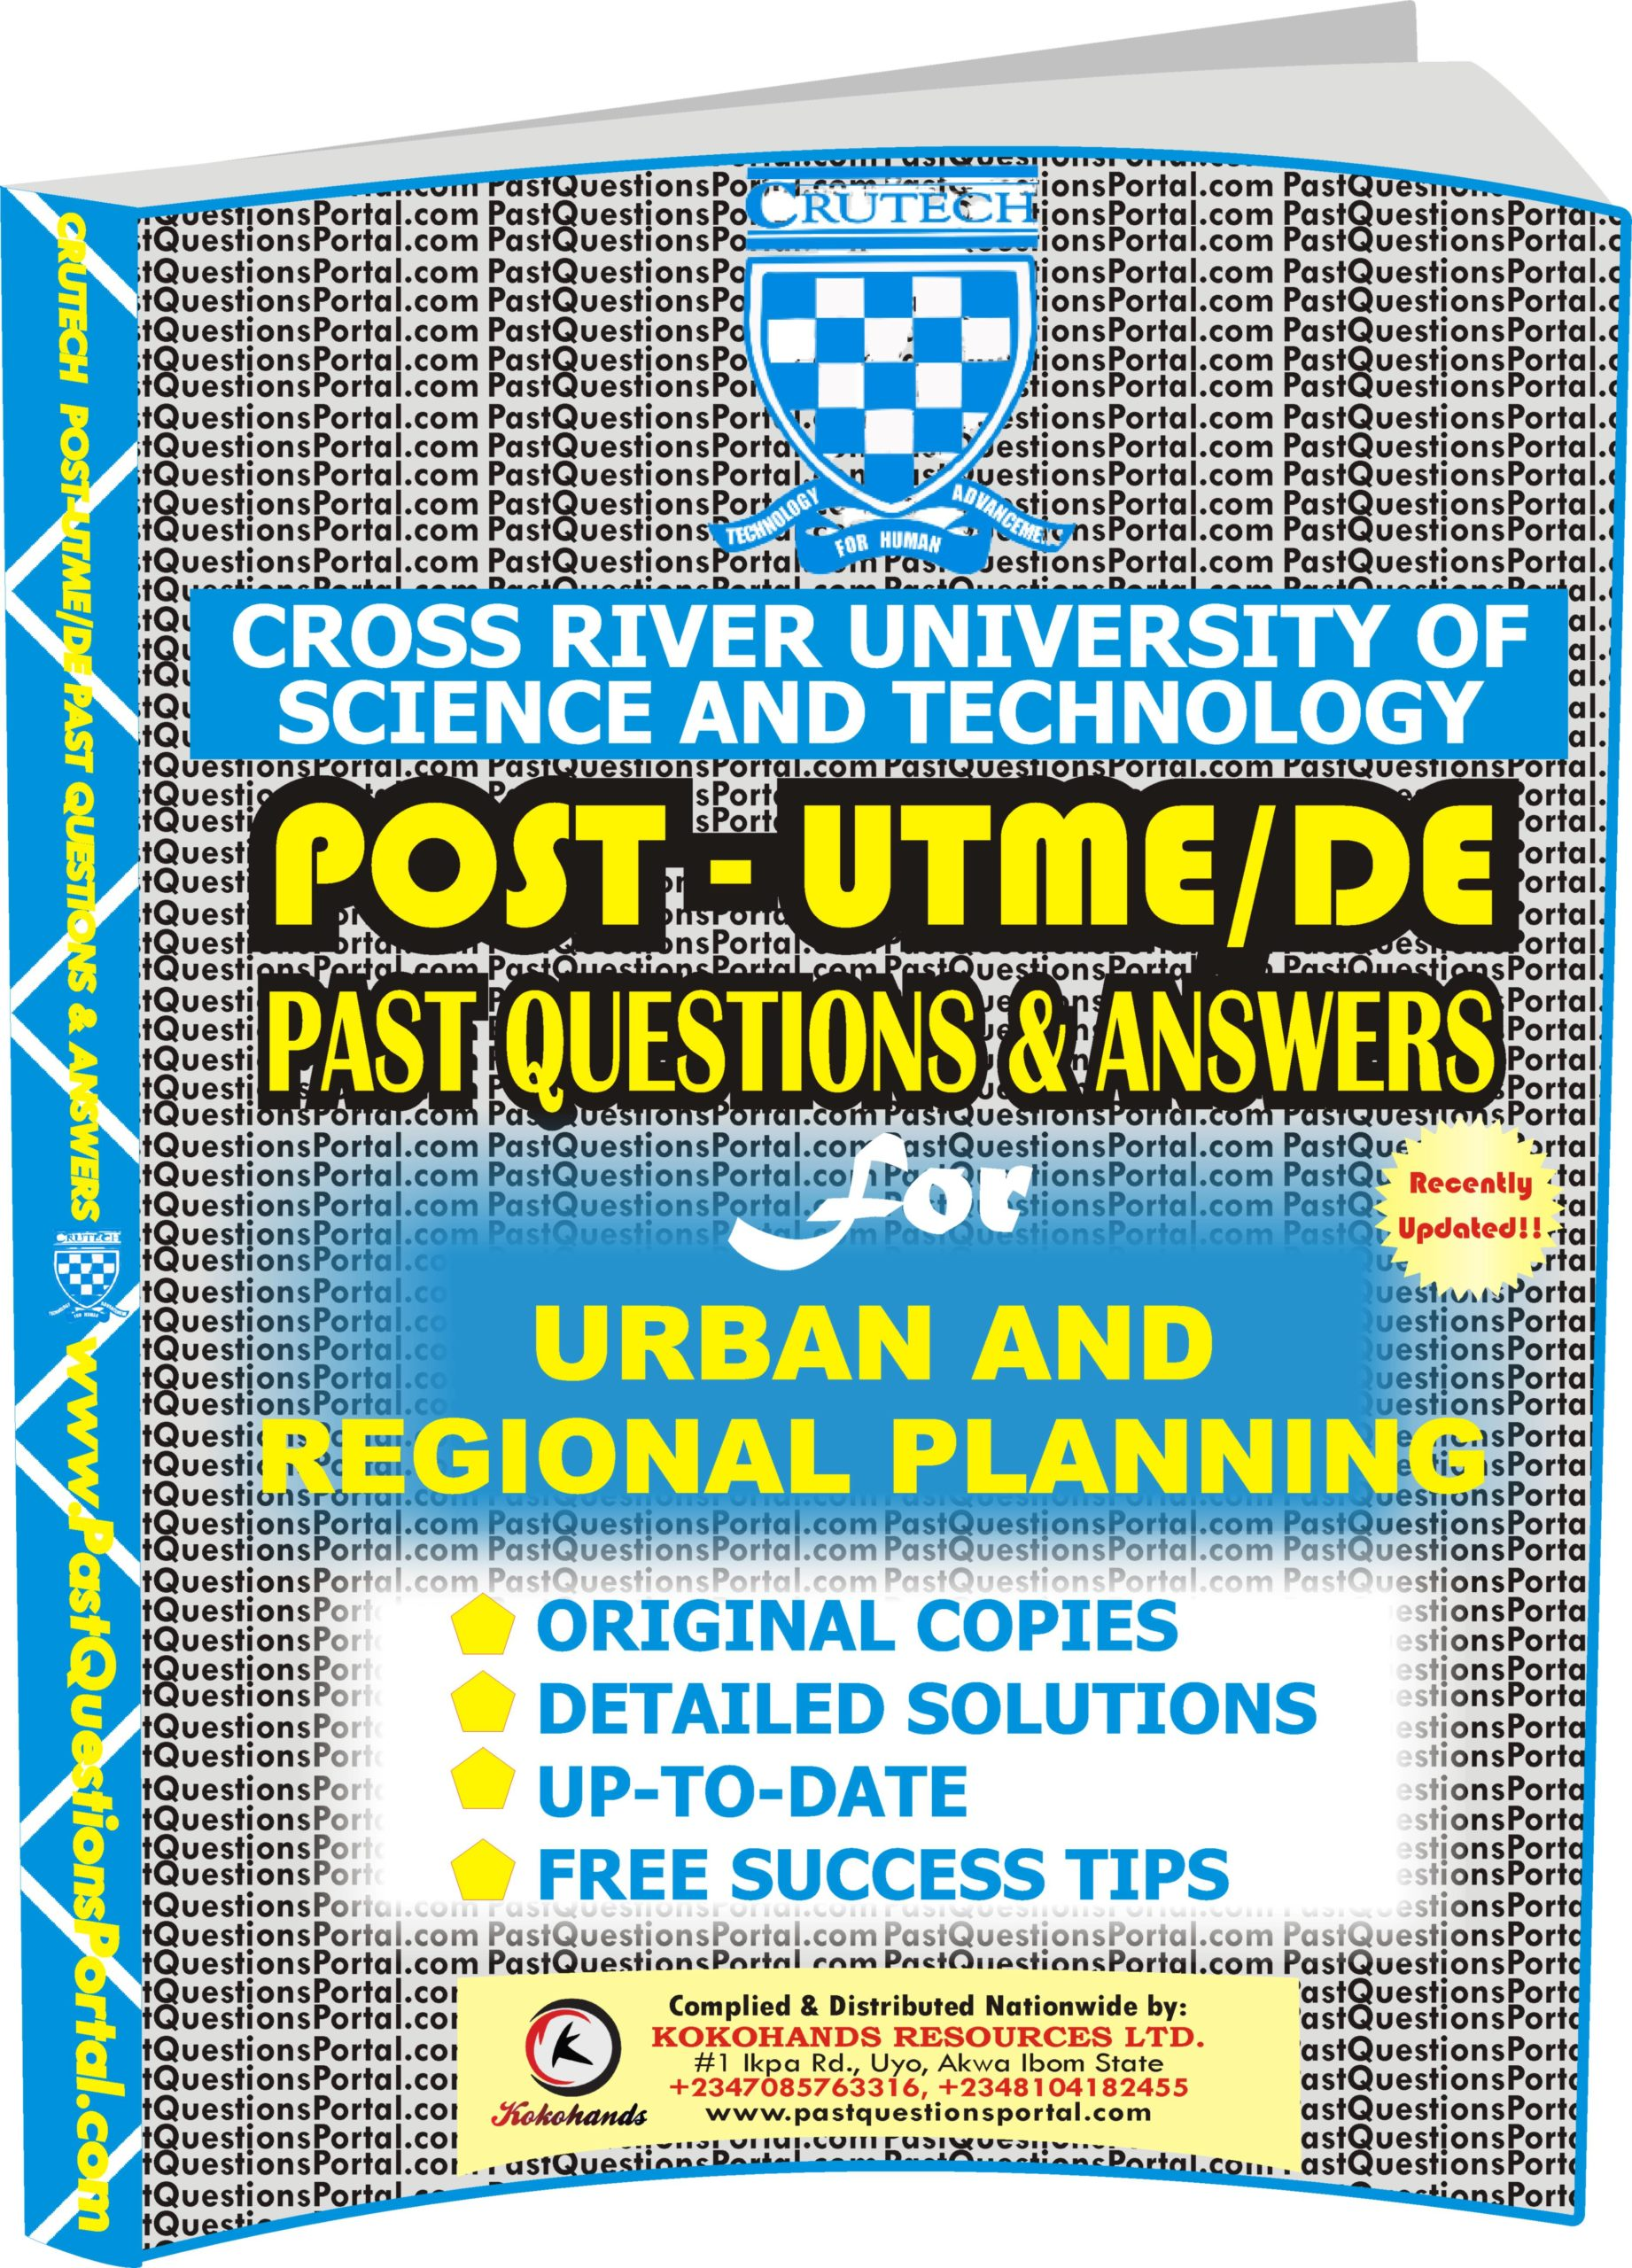 CRUTECH Post UTME Past Questions for Urban and Regional Planning